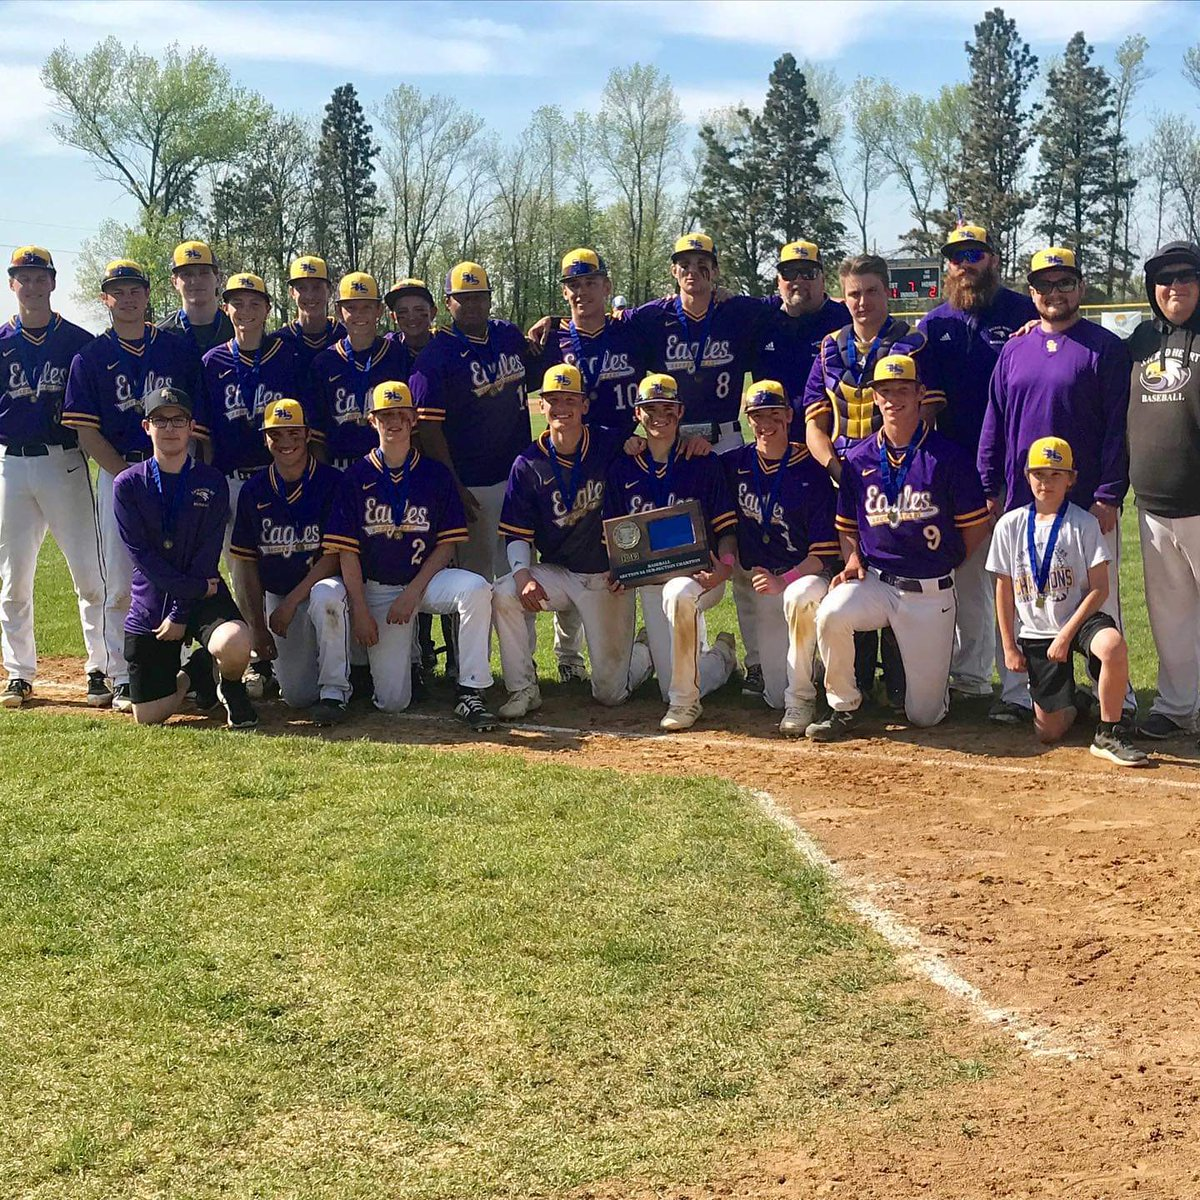 Congrats SHS baseball! West Subsection 8A Champions!!! The Eagles play Thursday in TRF! #mySHS #SeizethisMoment 🦅